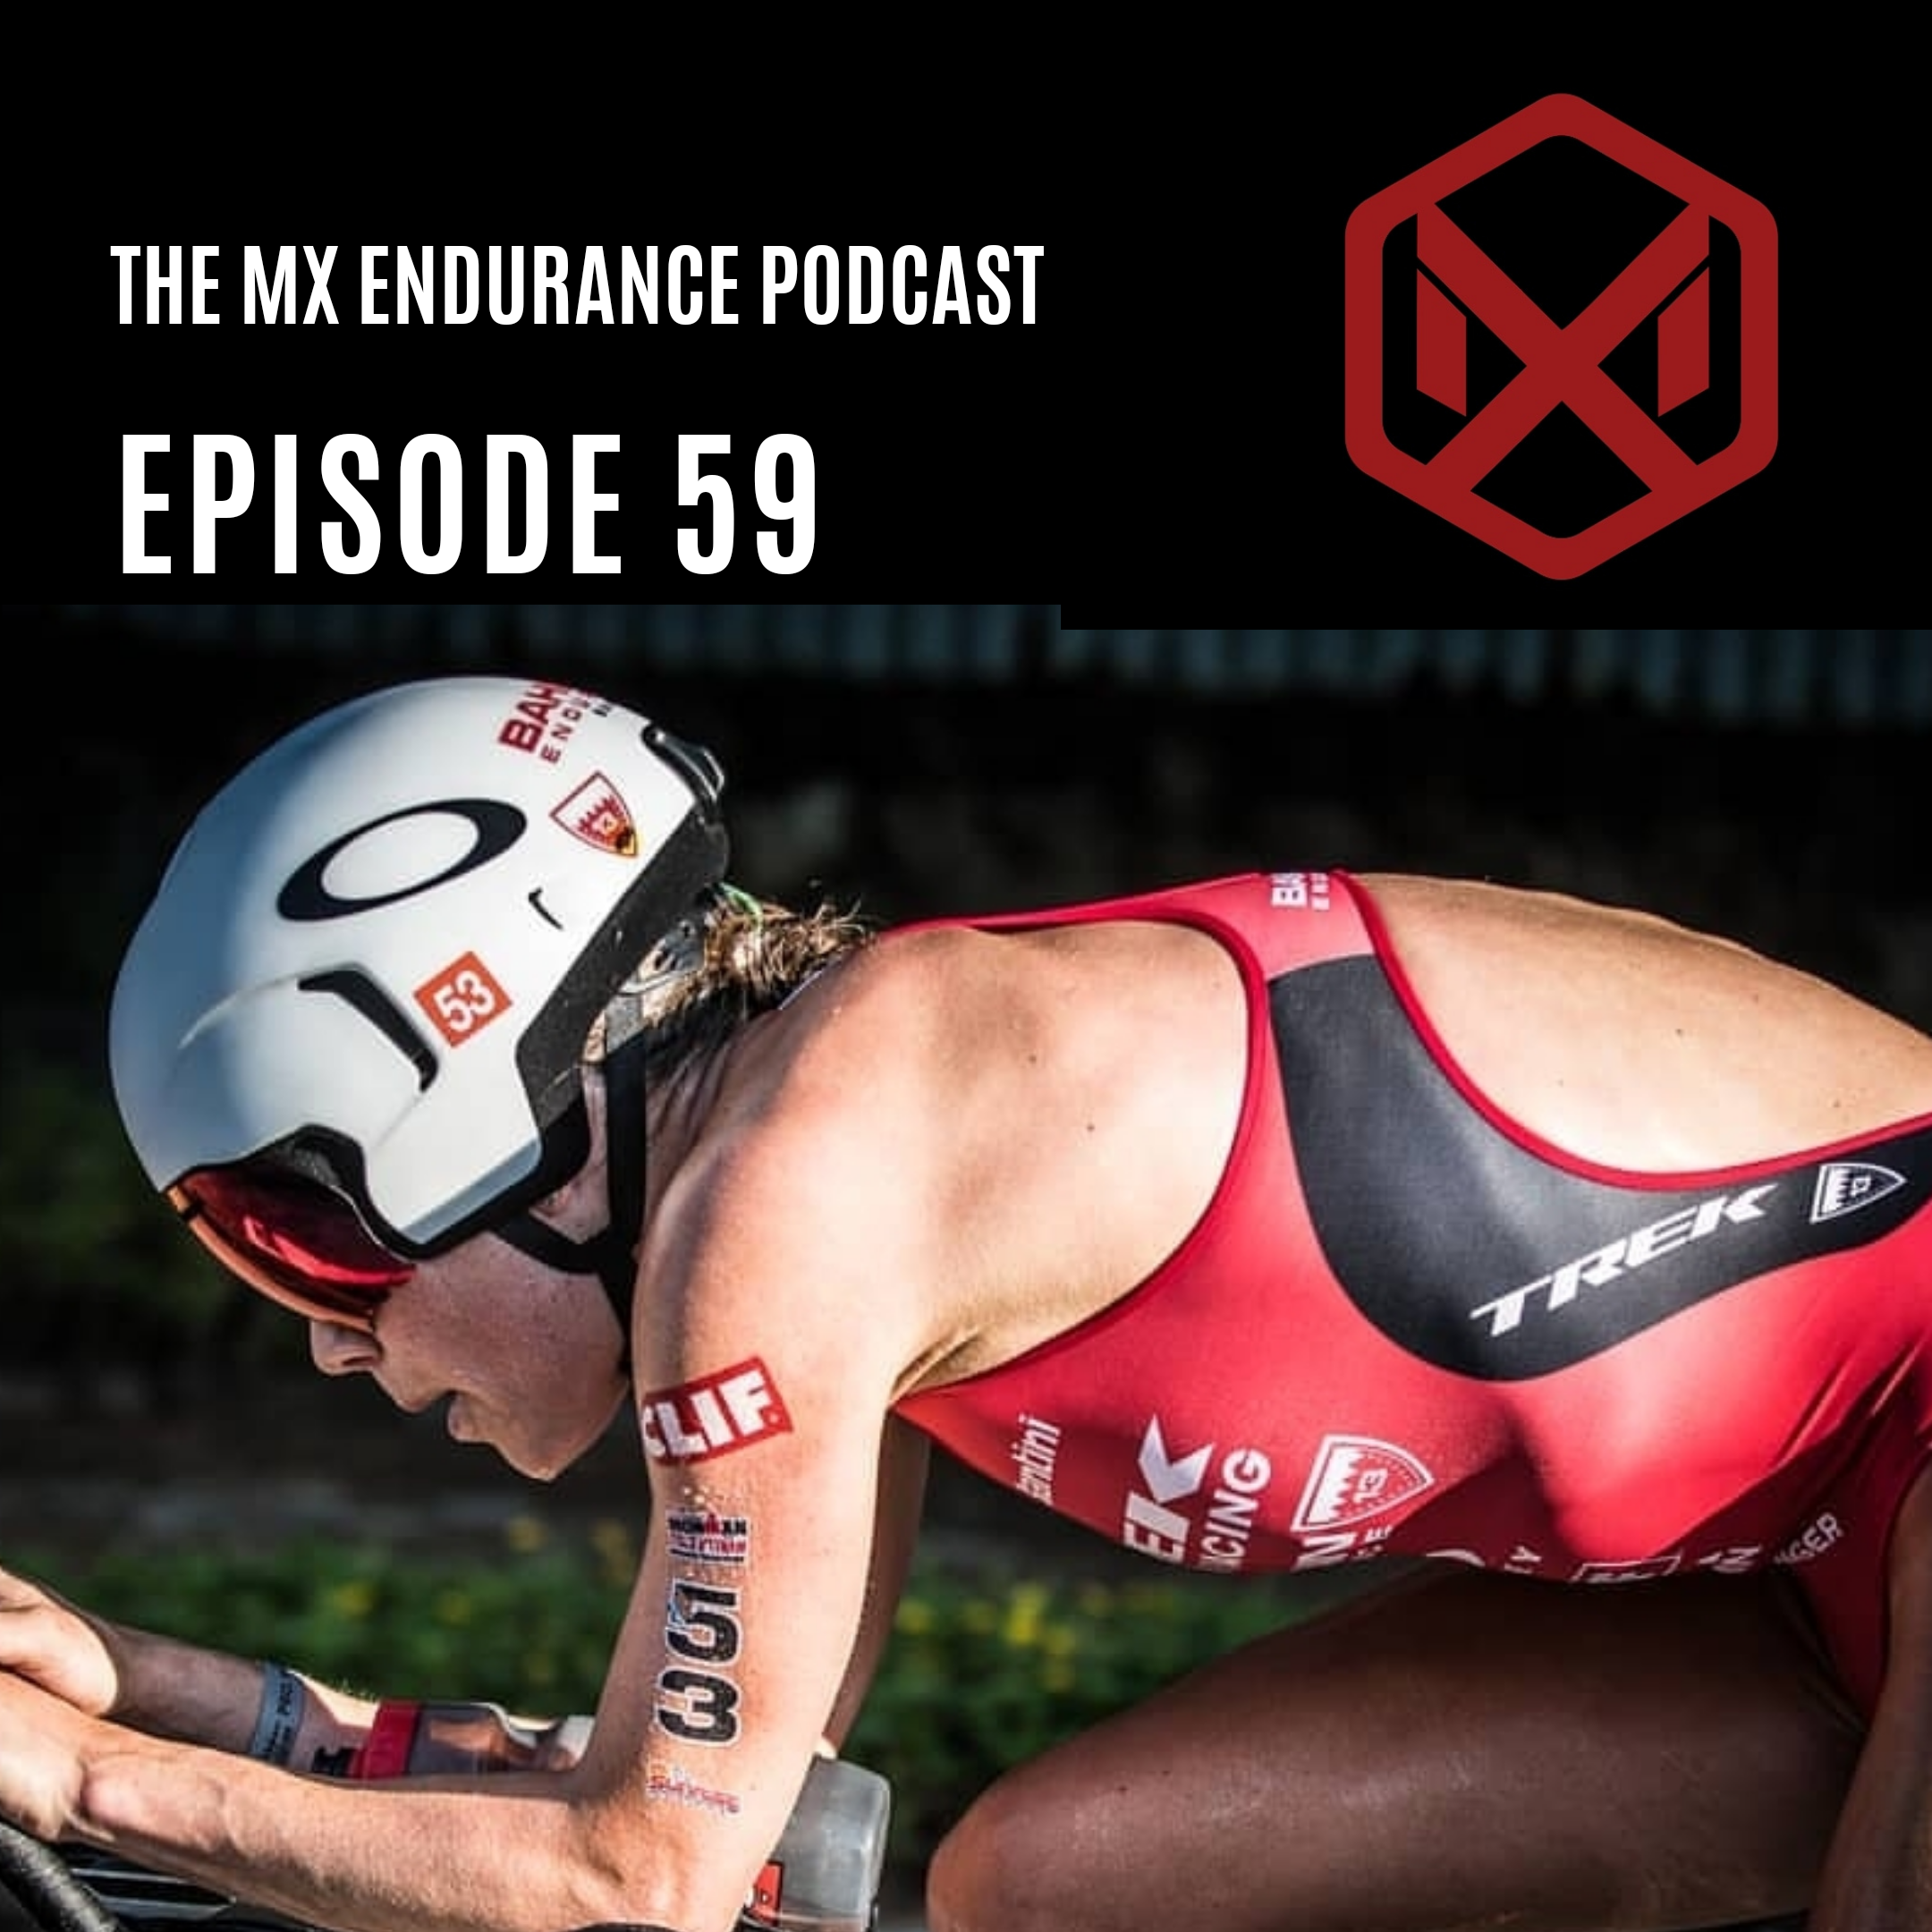 #59 - Sub 2 Hour Marathon Attempts, Asia-Pacific 70.3 Championships & More